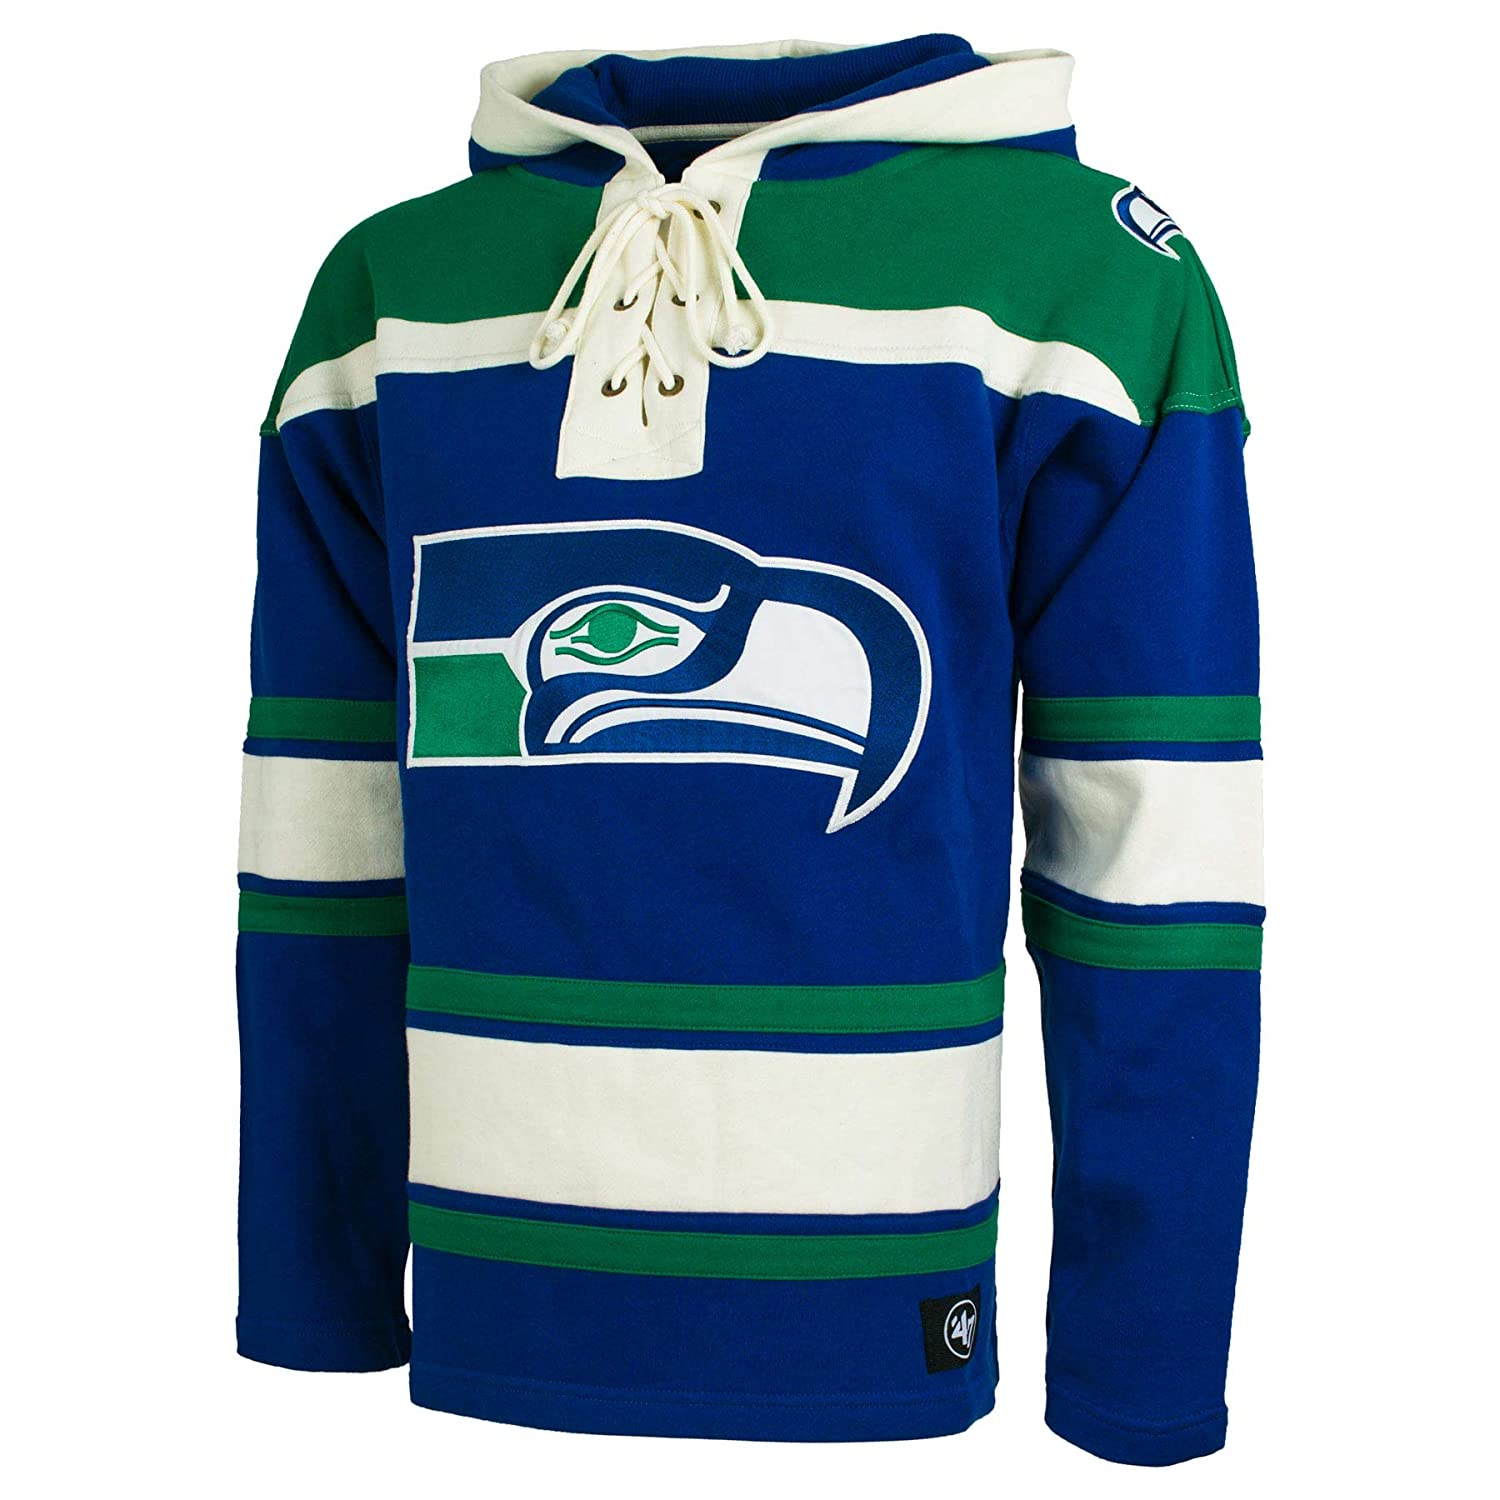 half off acdcb 34d3d Seattle Seahawks NFL '47 Heavyweight Jersey Lacer Hoodie ...